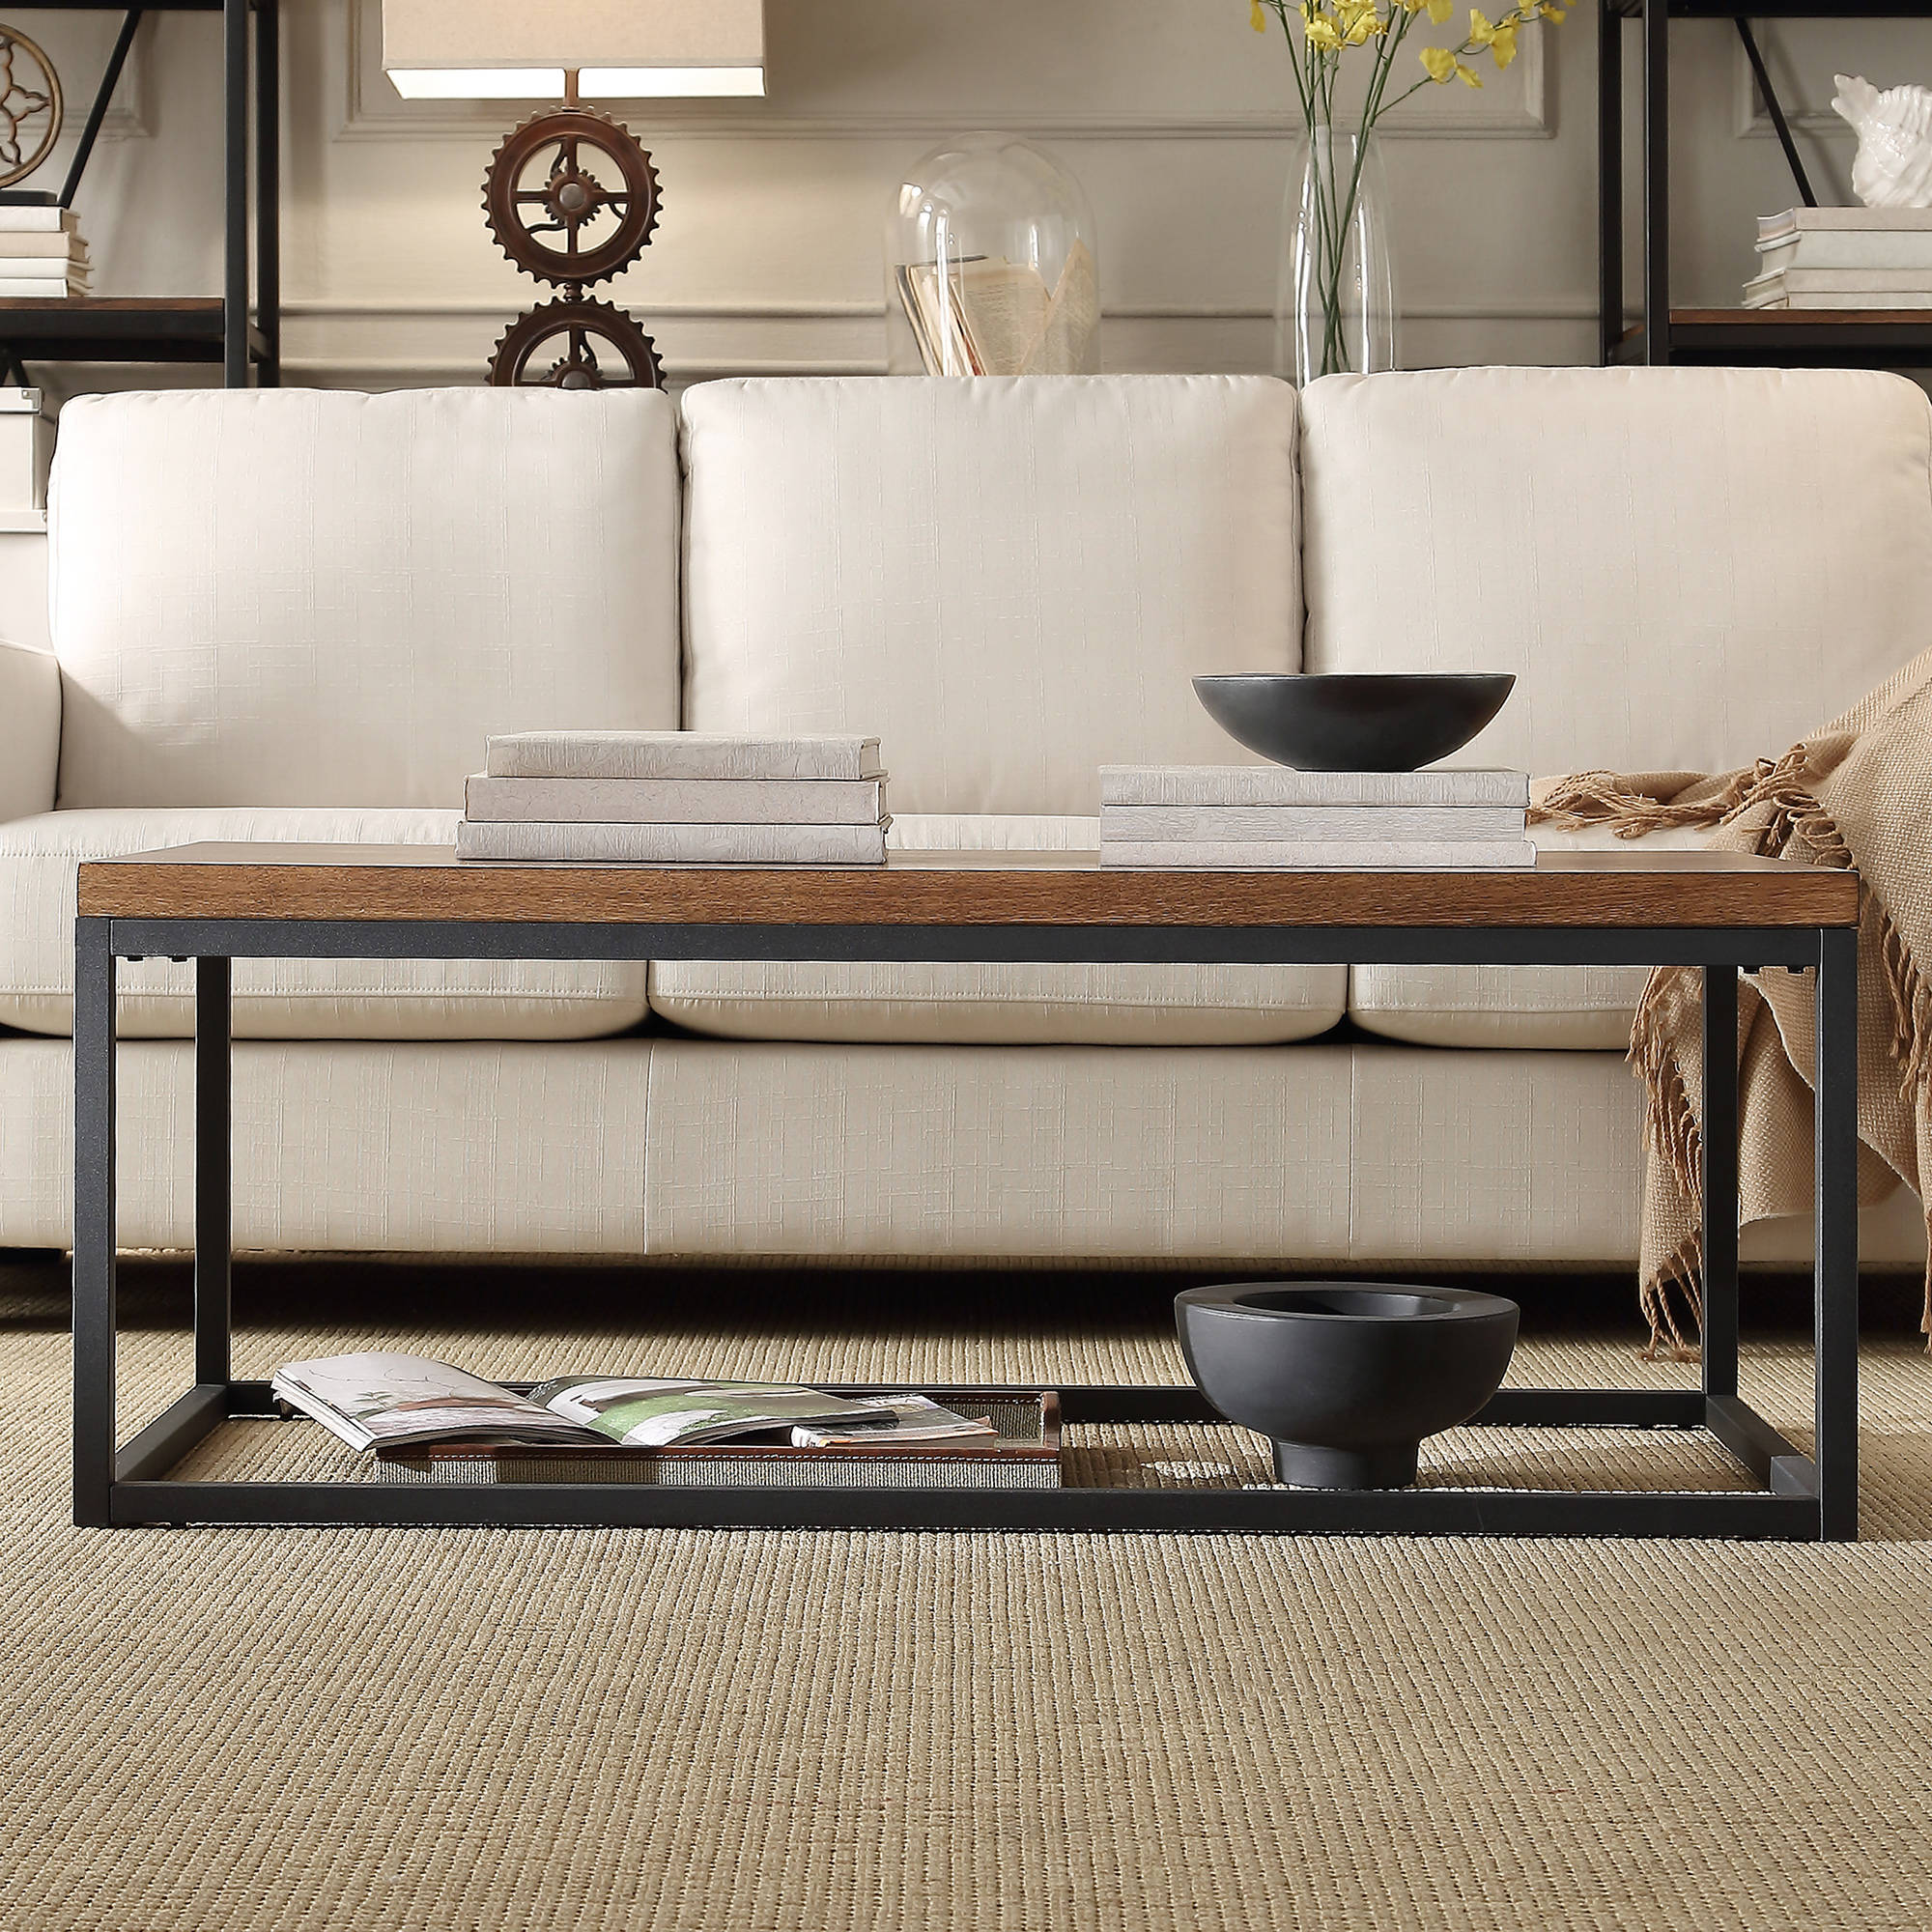 Weston Home Rectangular Cocktail Table, Brown Wood and Black Metal by Overstock